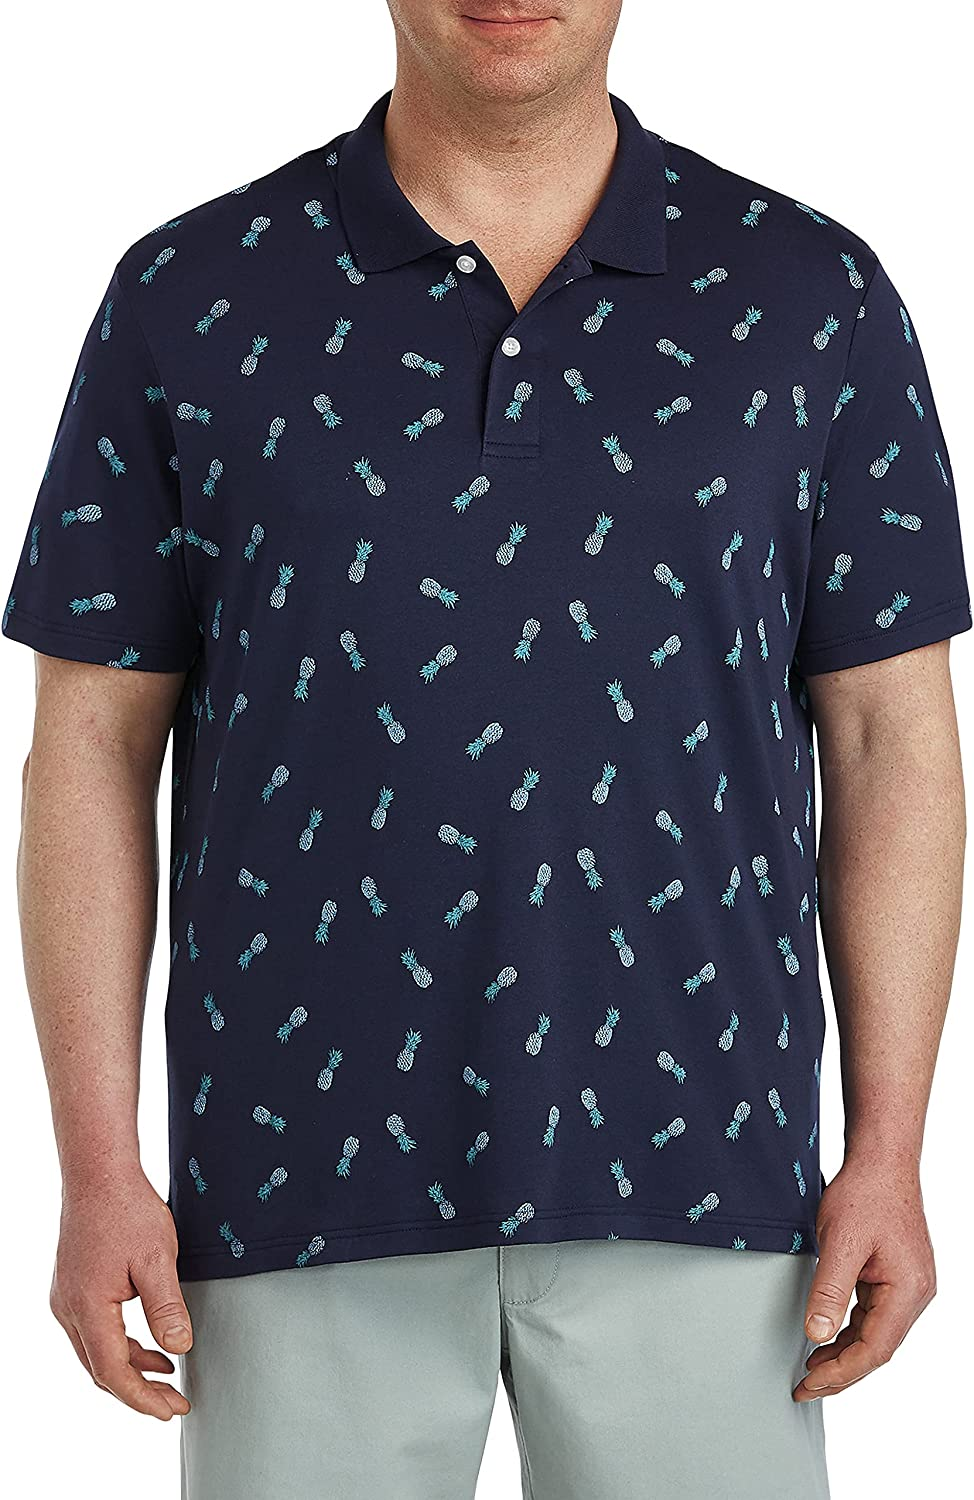 Harbor Bay by DXL Big and Tall Pineapple Print Polo Shirt, Blue, XLT